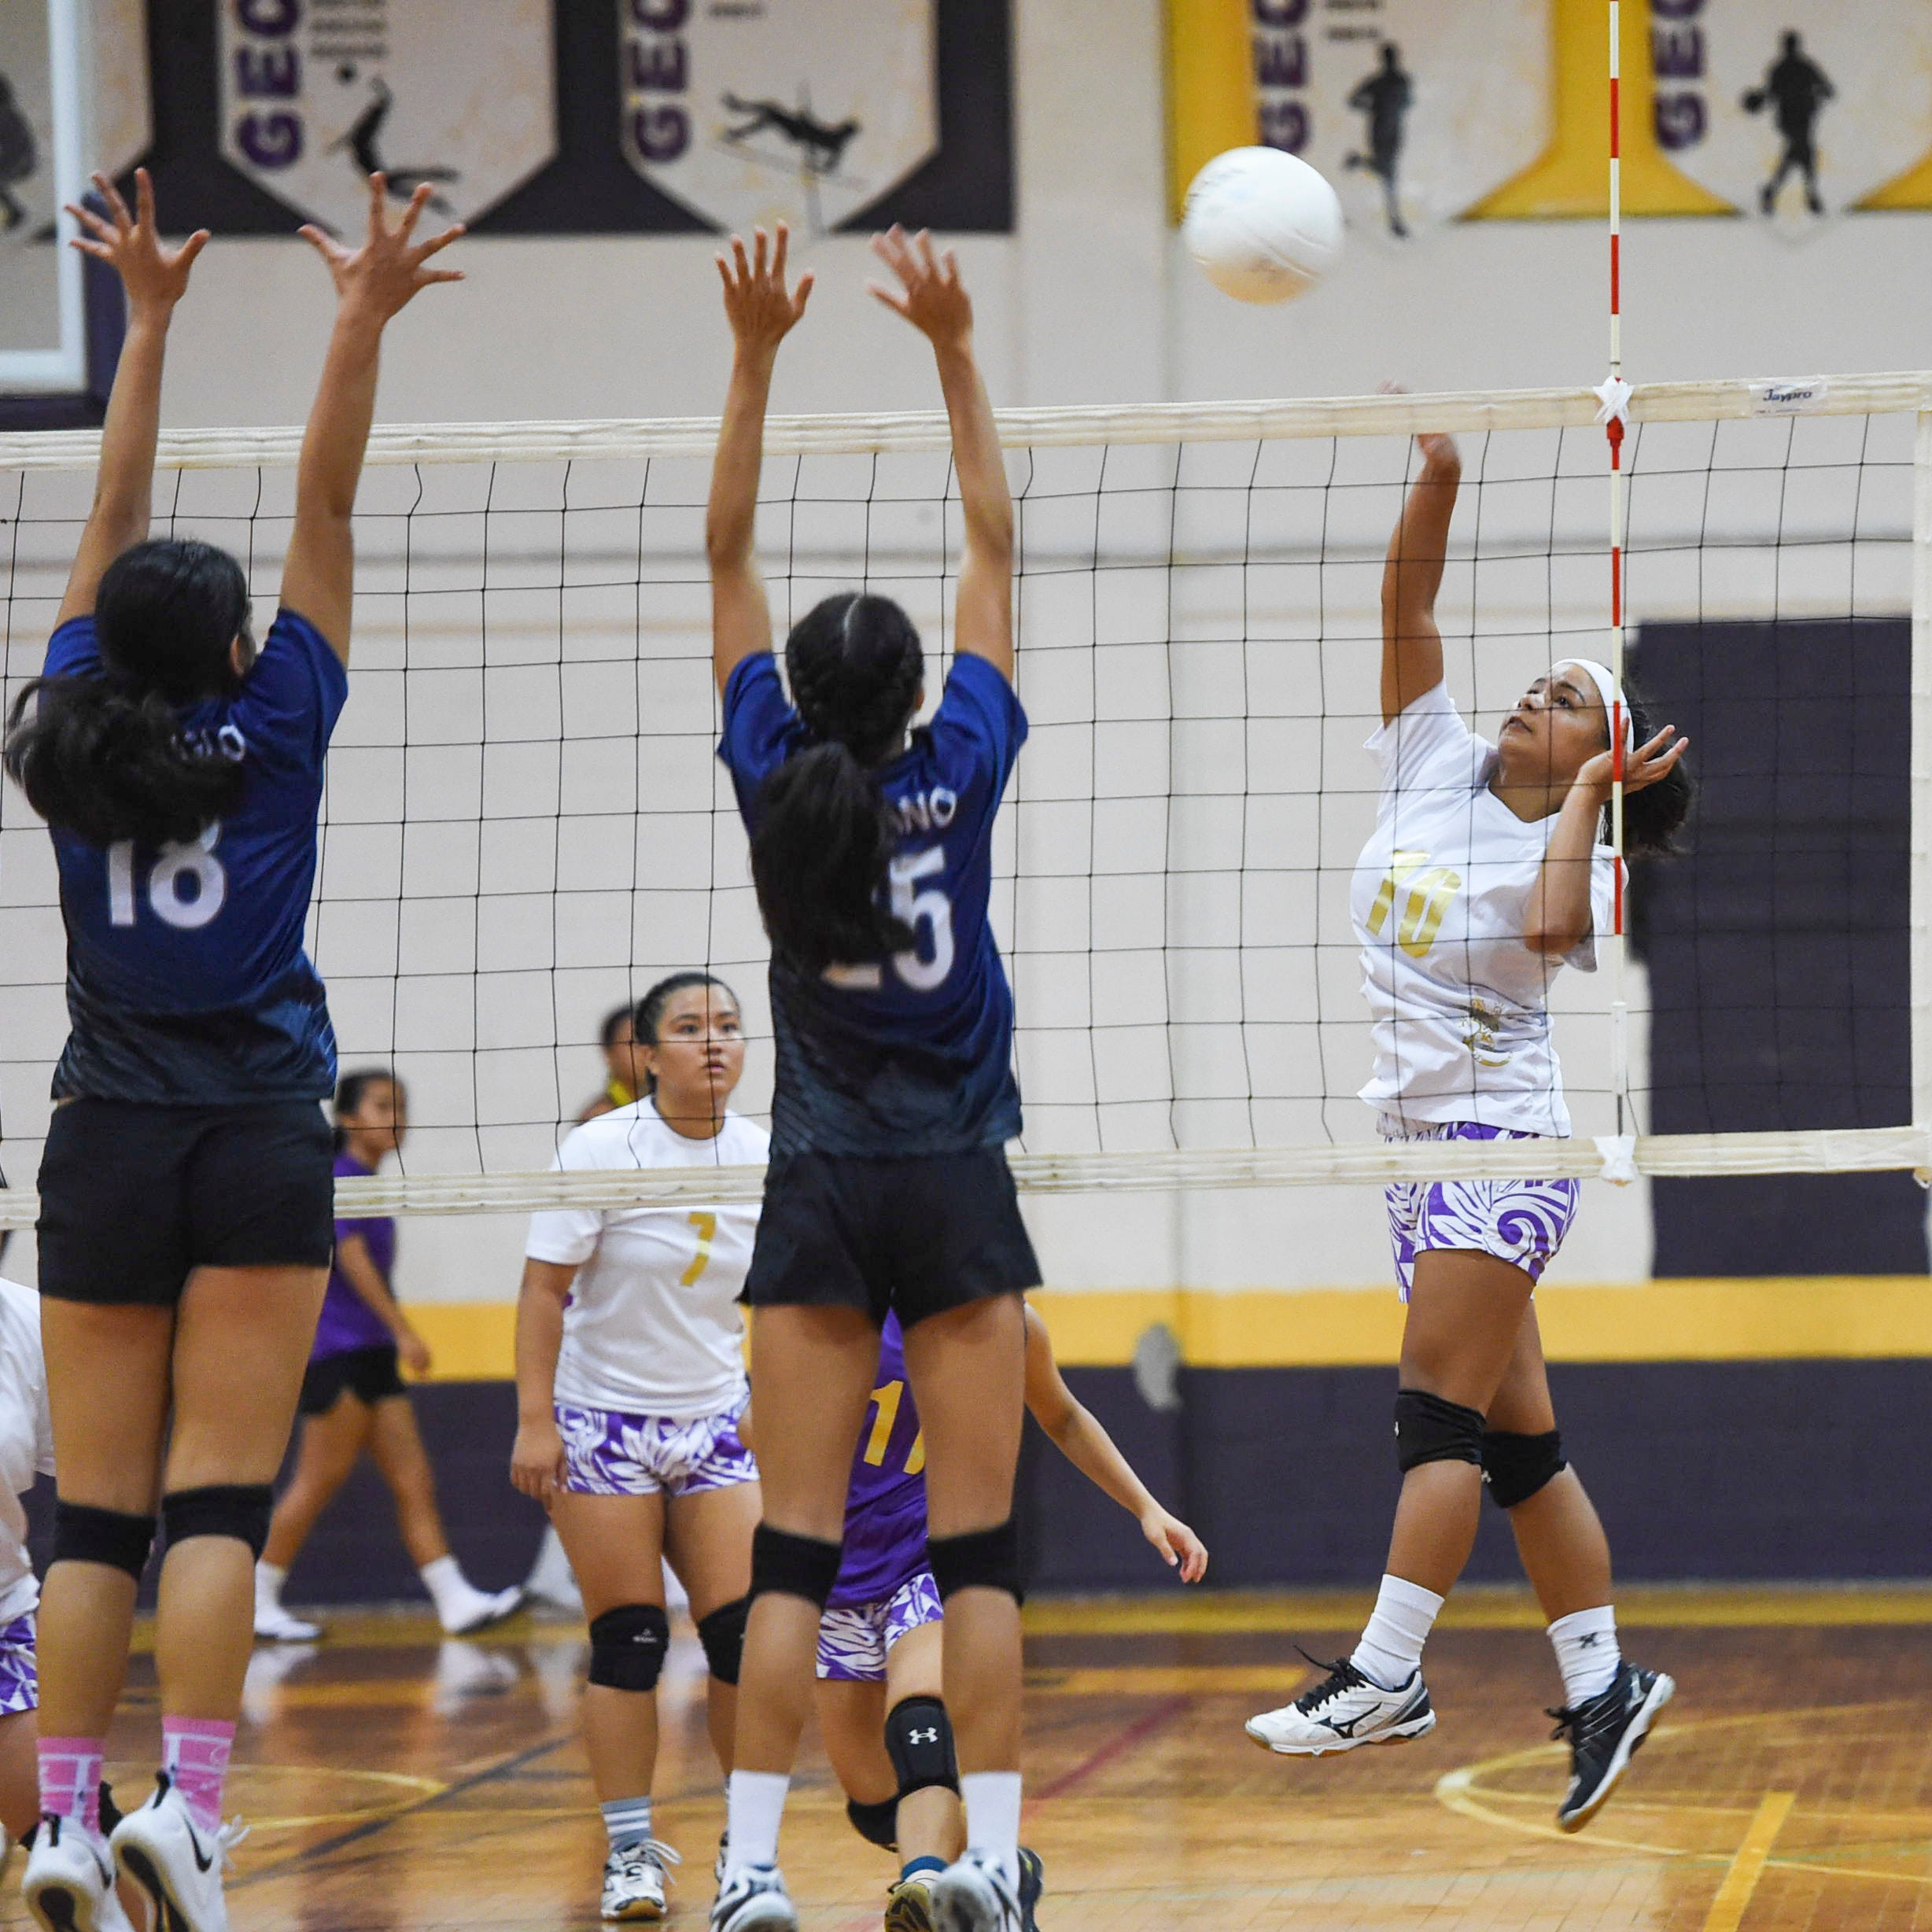 Academy beats GW in straight sets